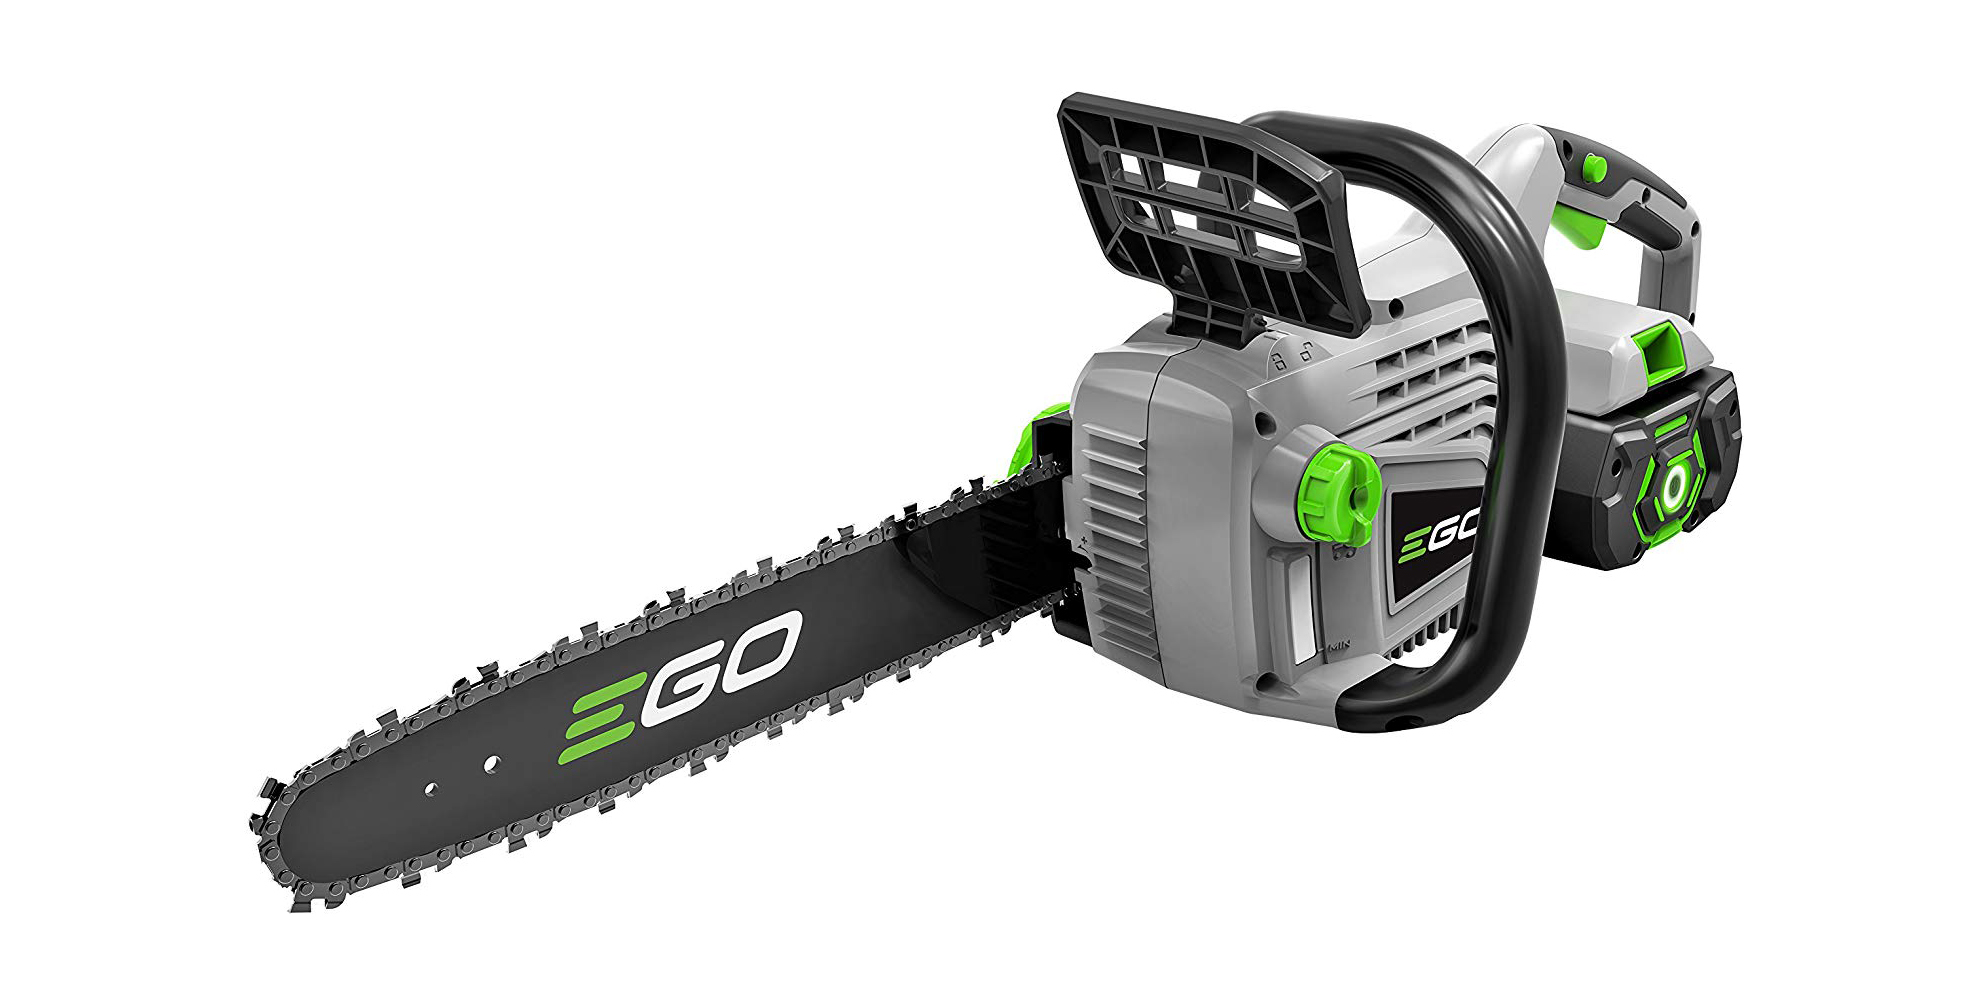 EGO 14-inch 56V Electric Chainsaw $179, more in today's Green Deals - Electrek